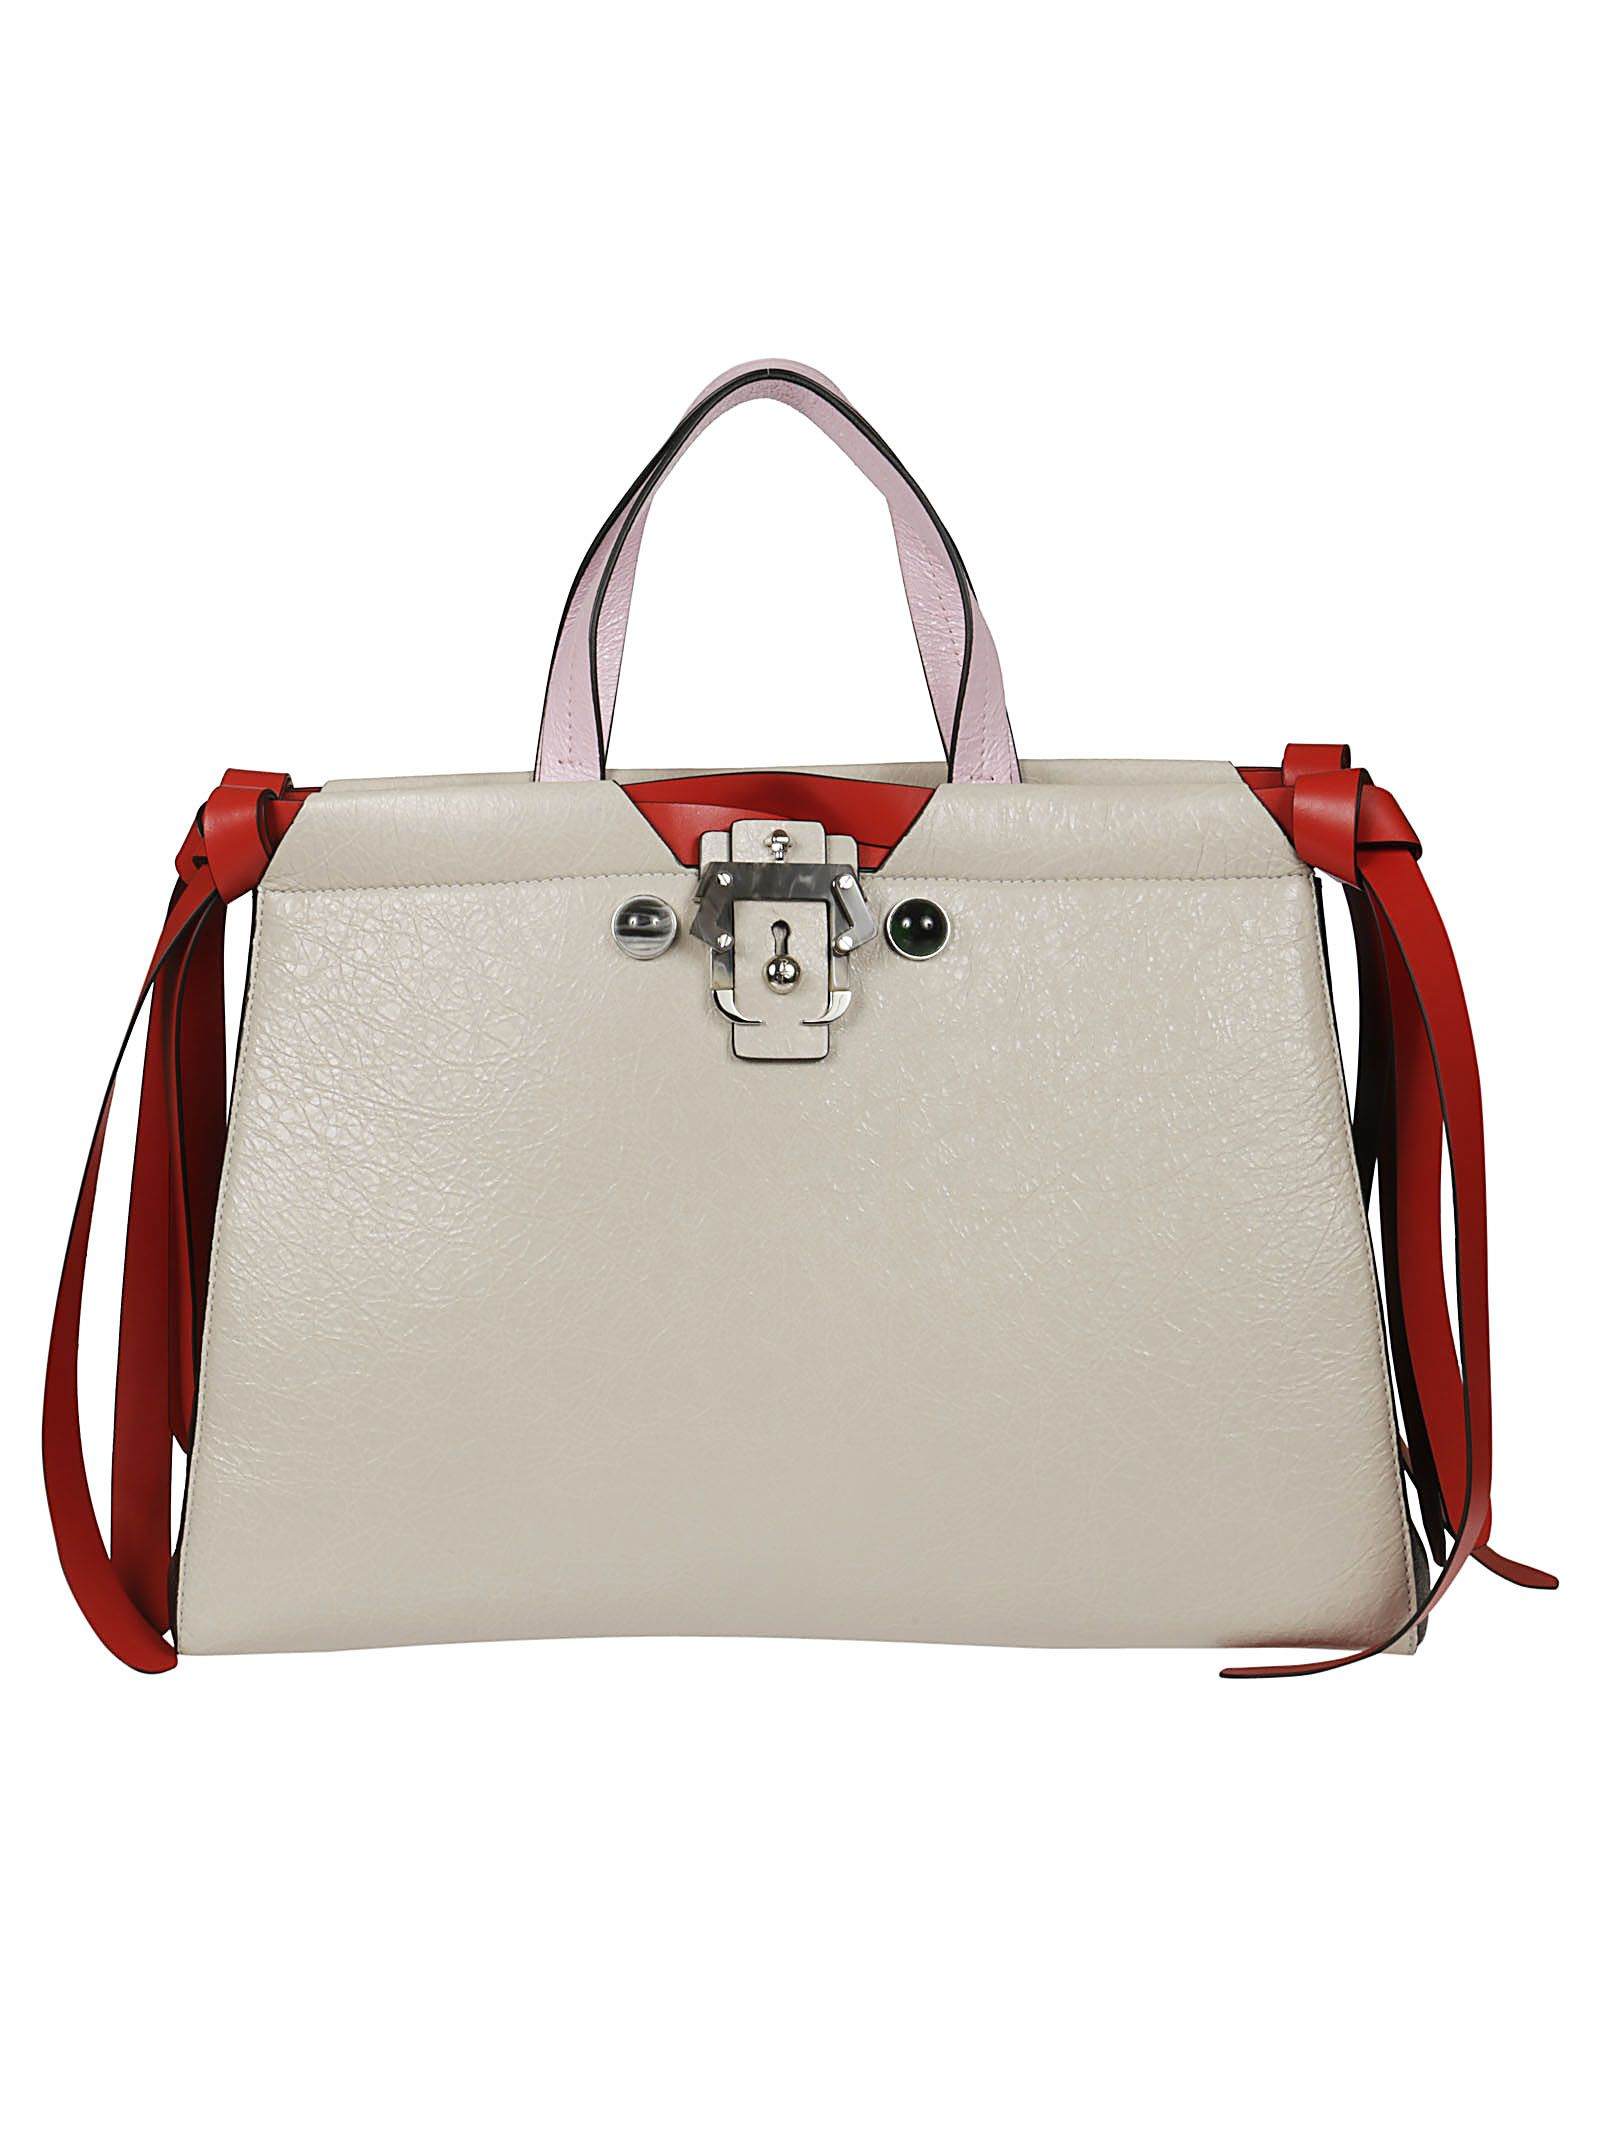 Paula Cademartori RACHEL CHIC CREASE SHOULDER BAG